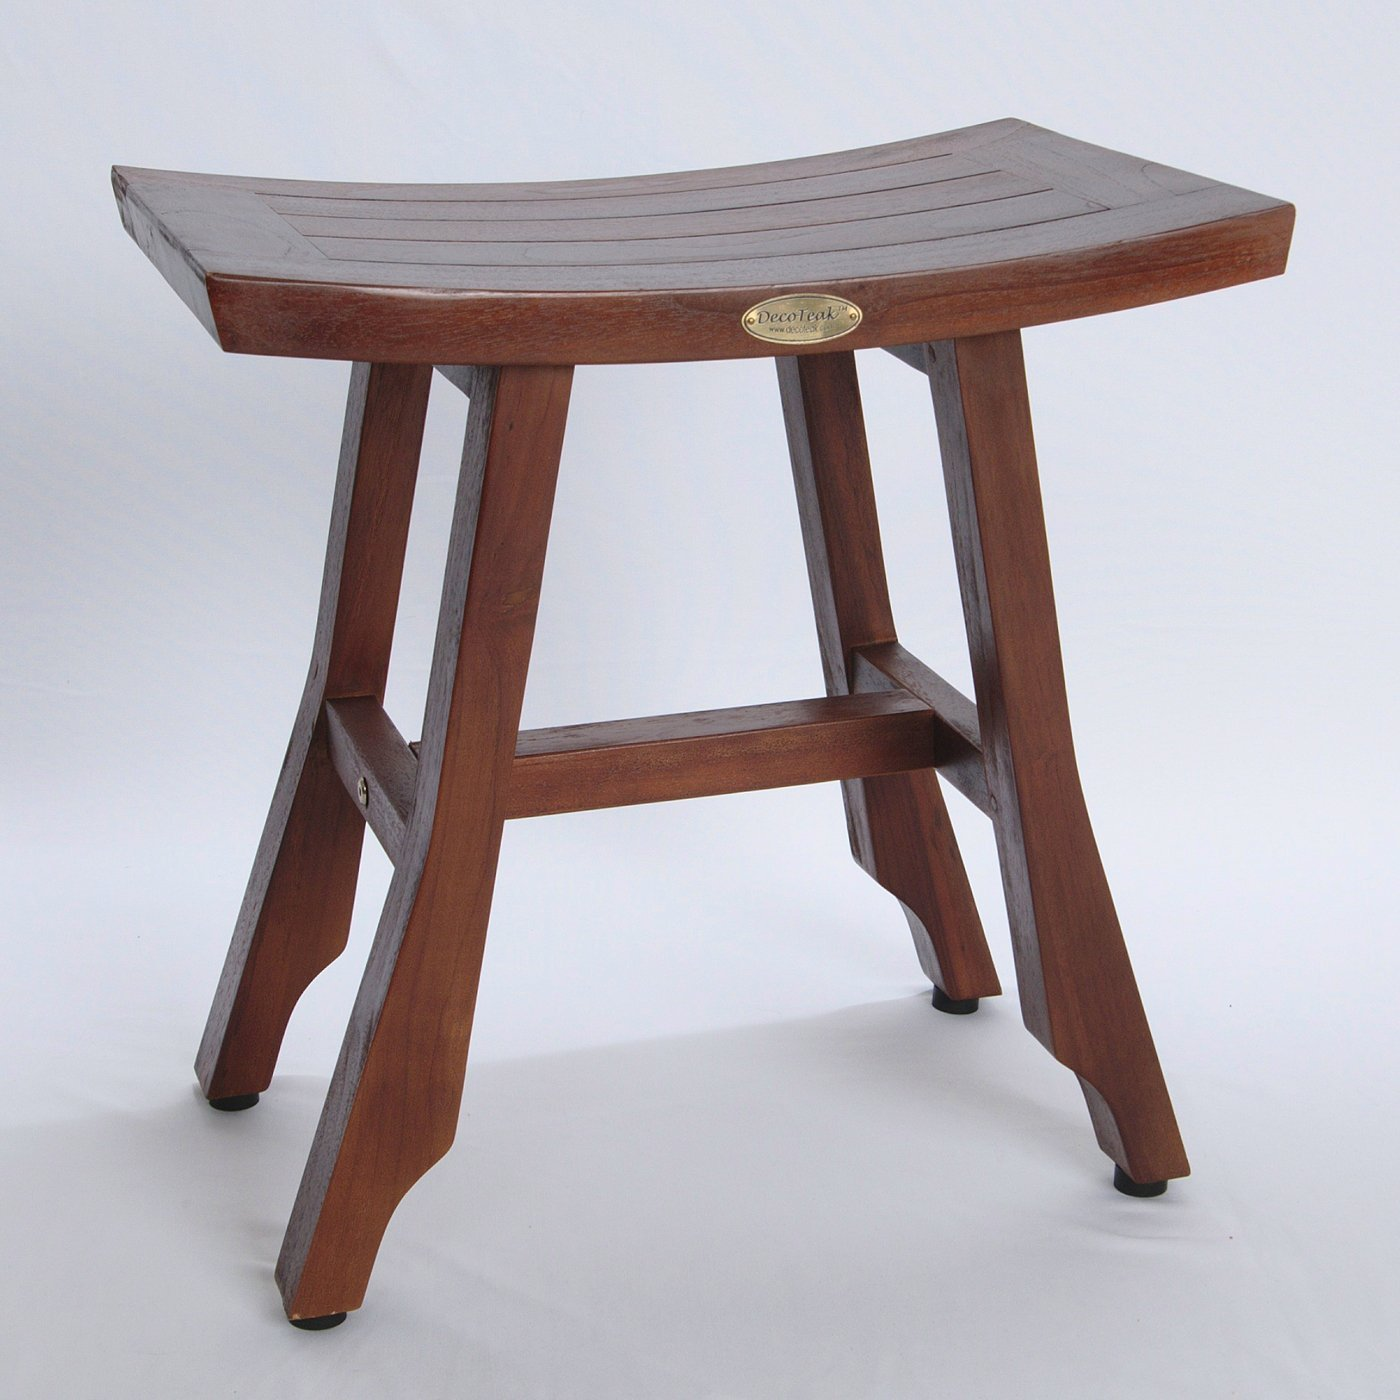 shower our with customer very for bathroom ada and comfortable signature new s sturdy compliant hardware easy is shelf assembly russthis perfect teak l great stool